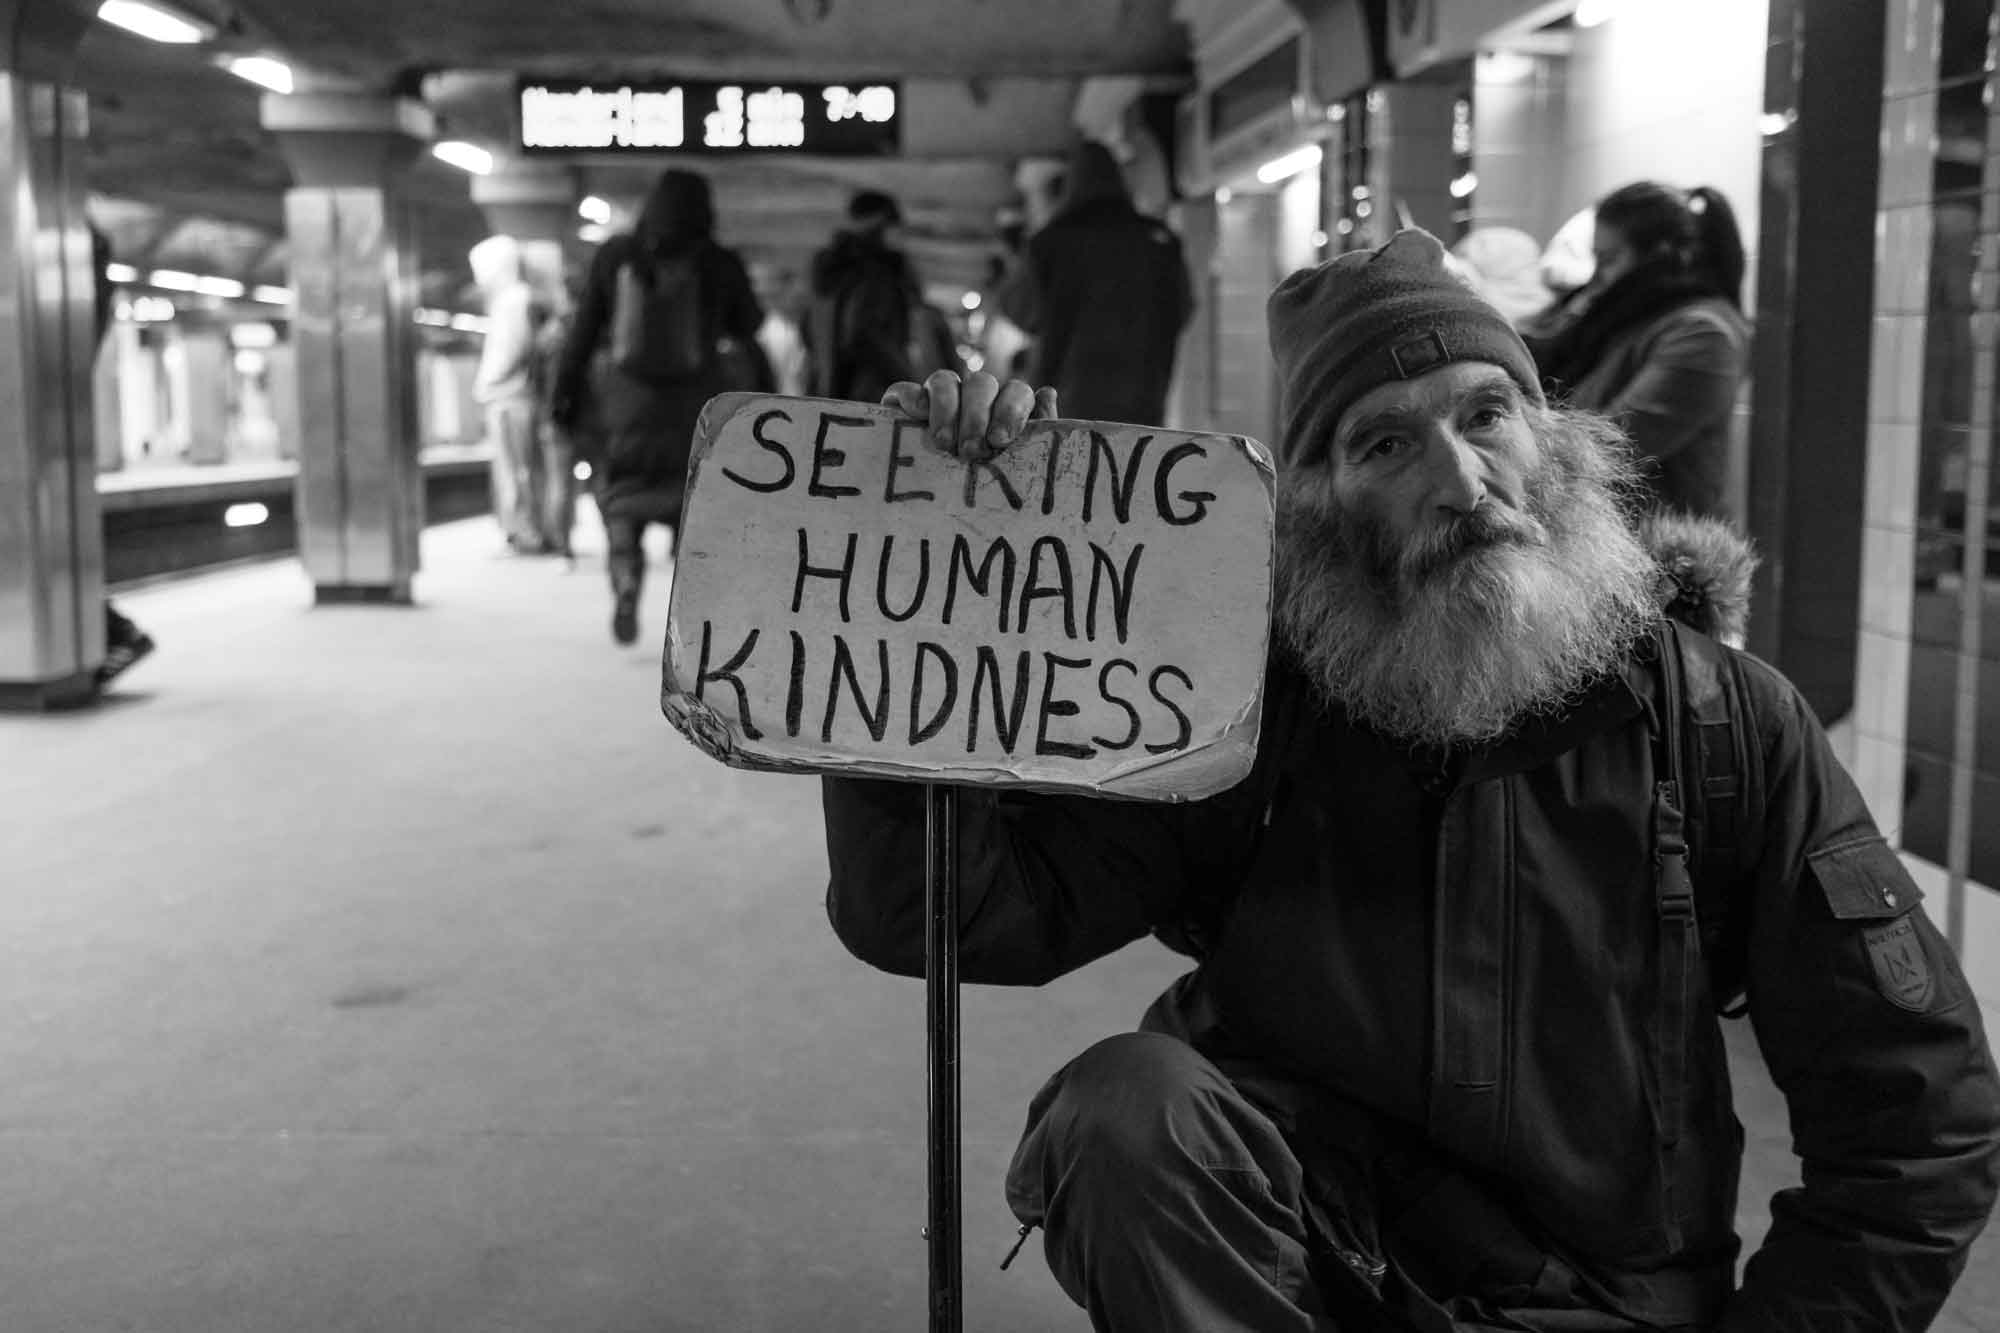 Human Kindness - Matt Collamer